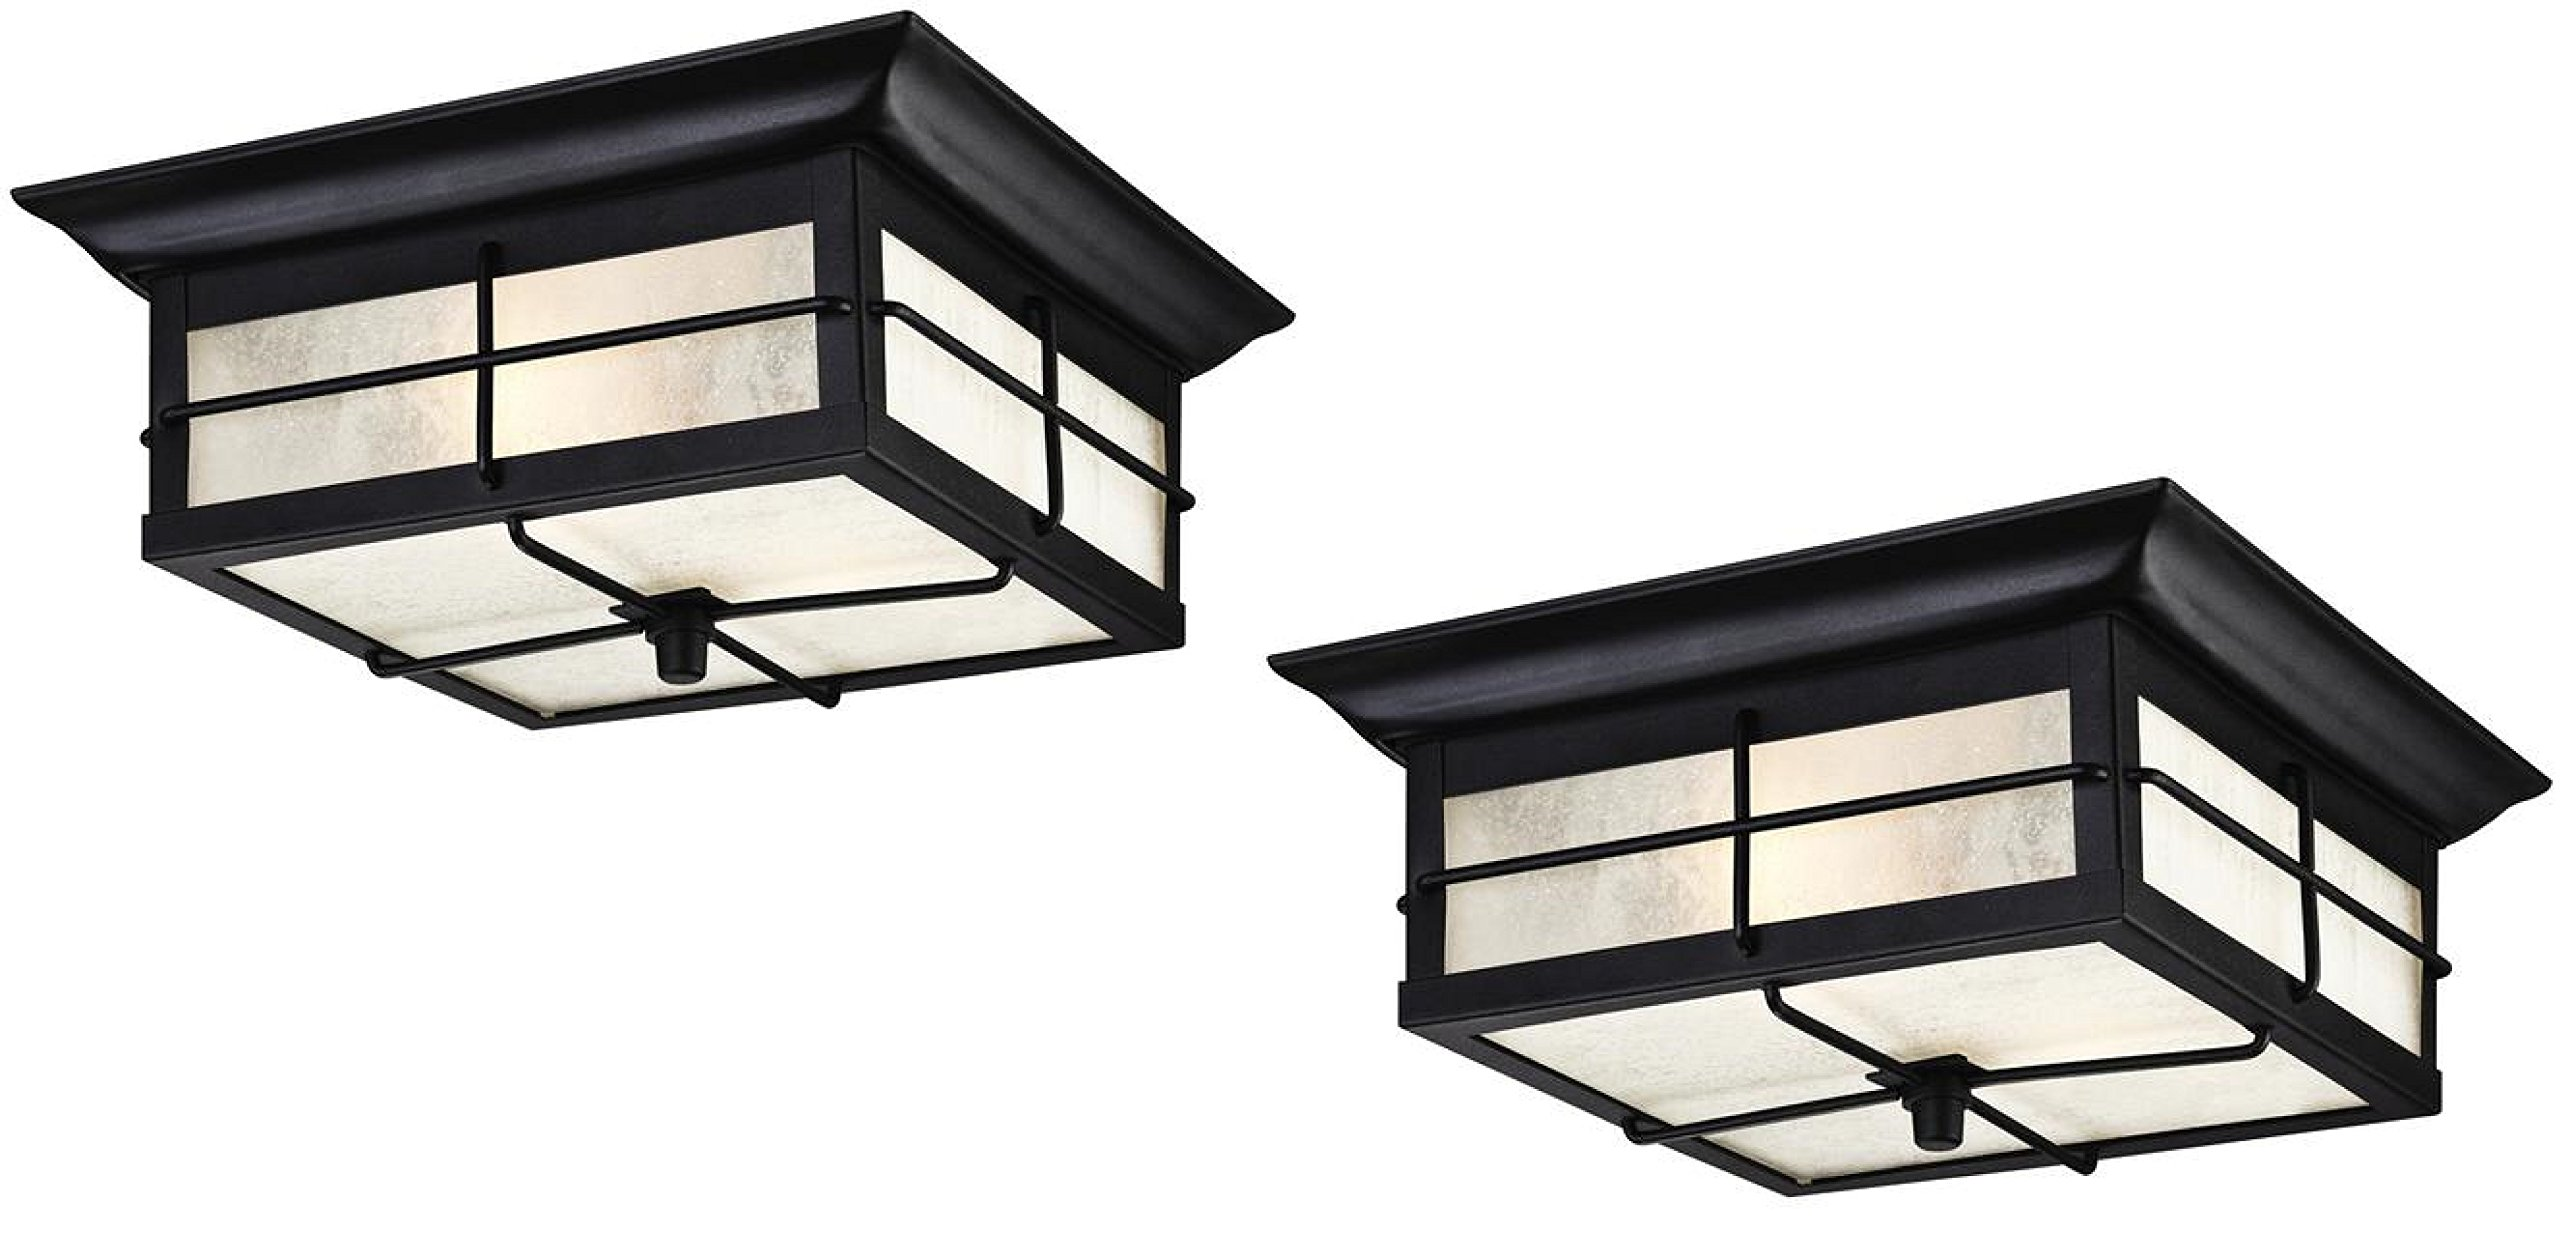 Orwell 2 Light Outdoor Flush Mount Fixture, Textured Black (2 Pack) by Dysmio Lighting